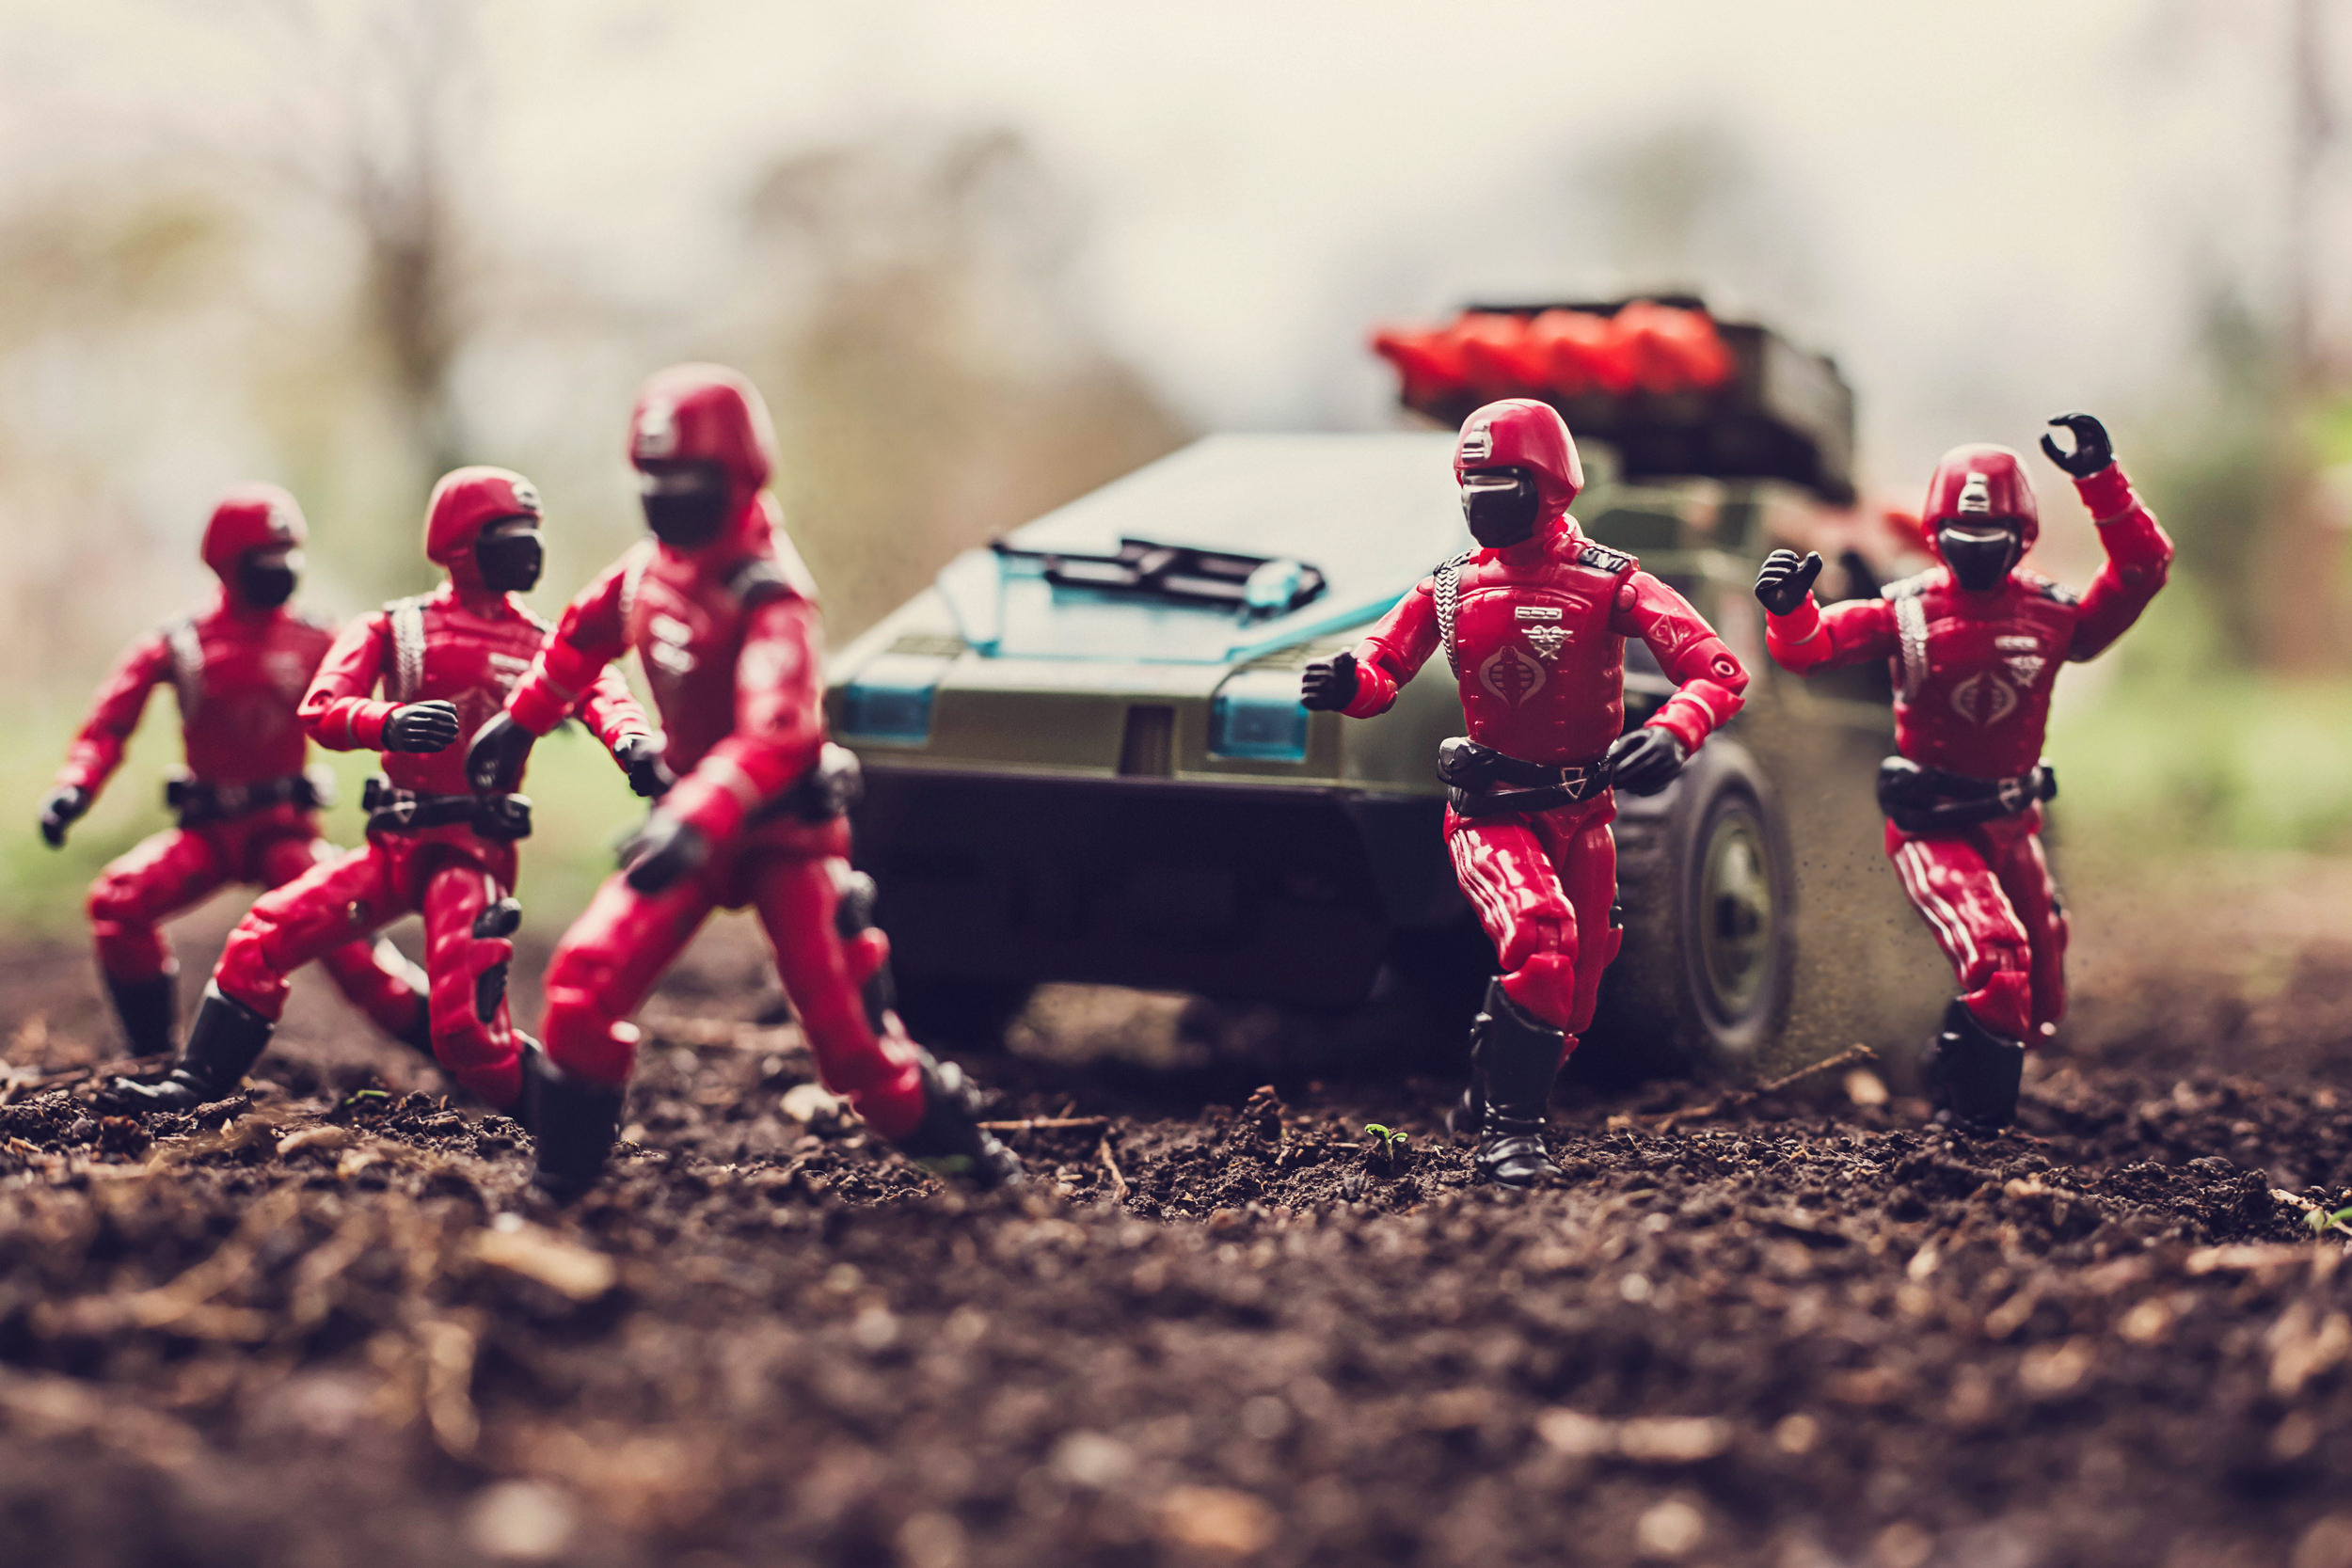 havoc-2-crimson-guard-cobra-gijoe-action-figure-toy-photography-paul-panfalone.jpg